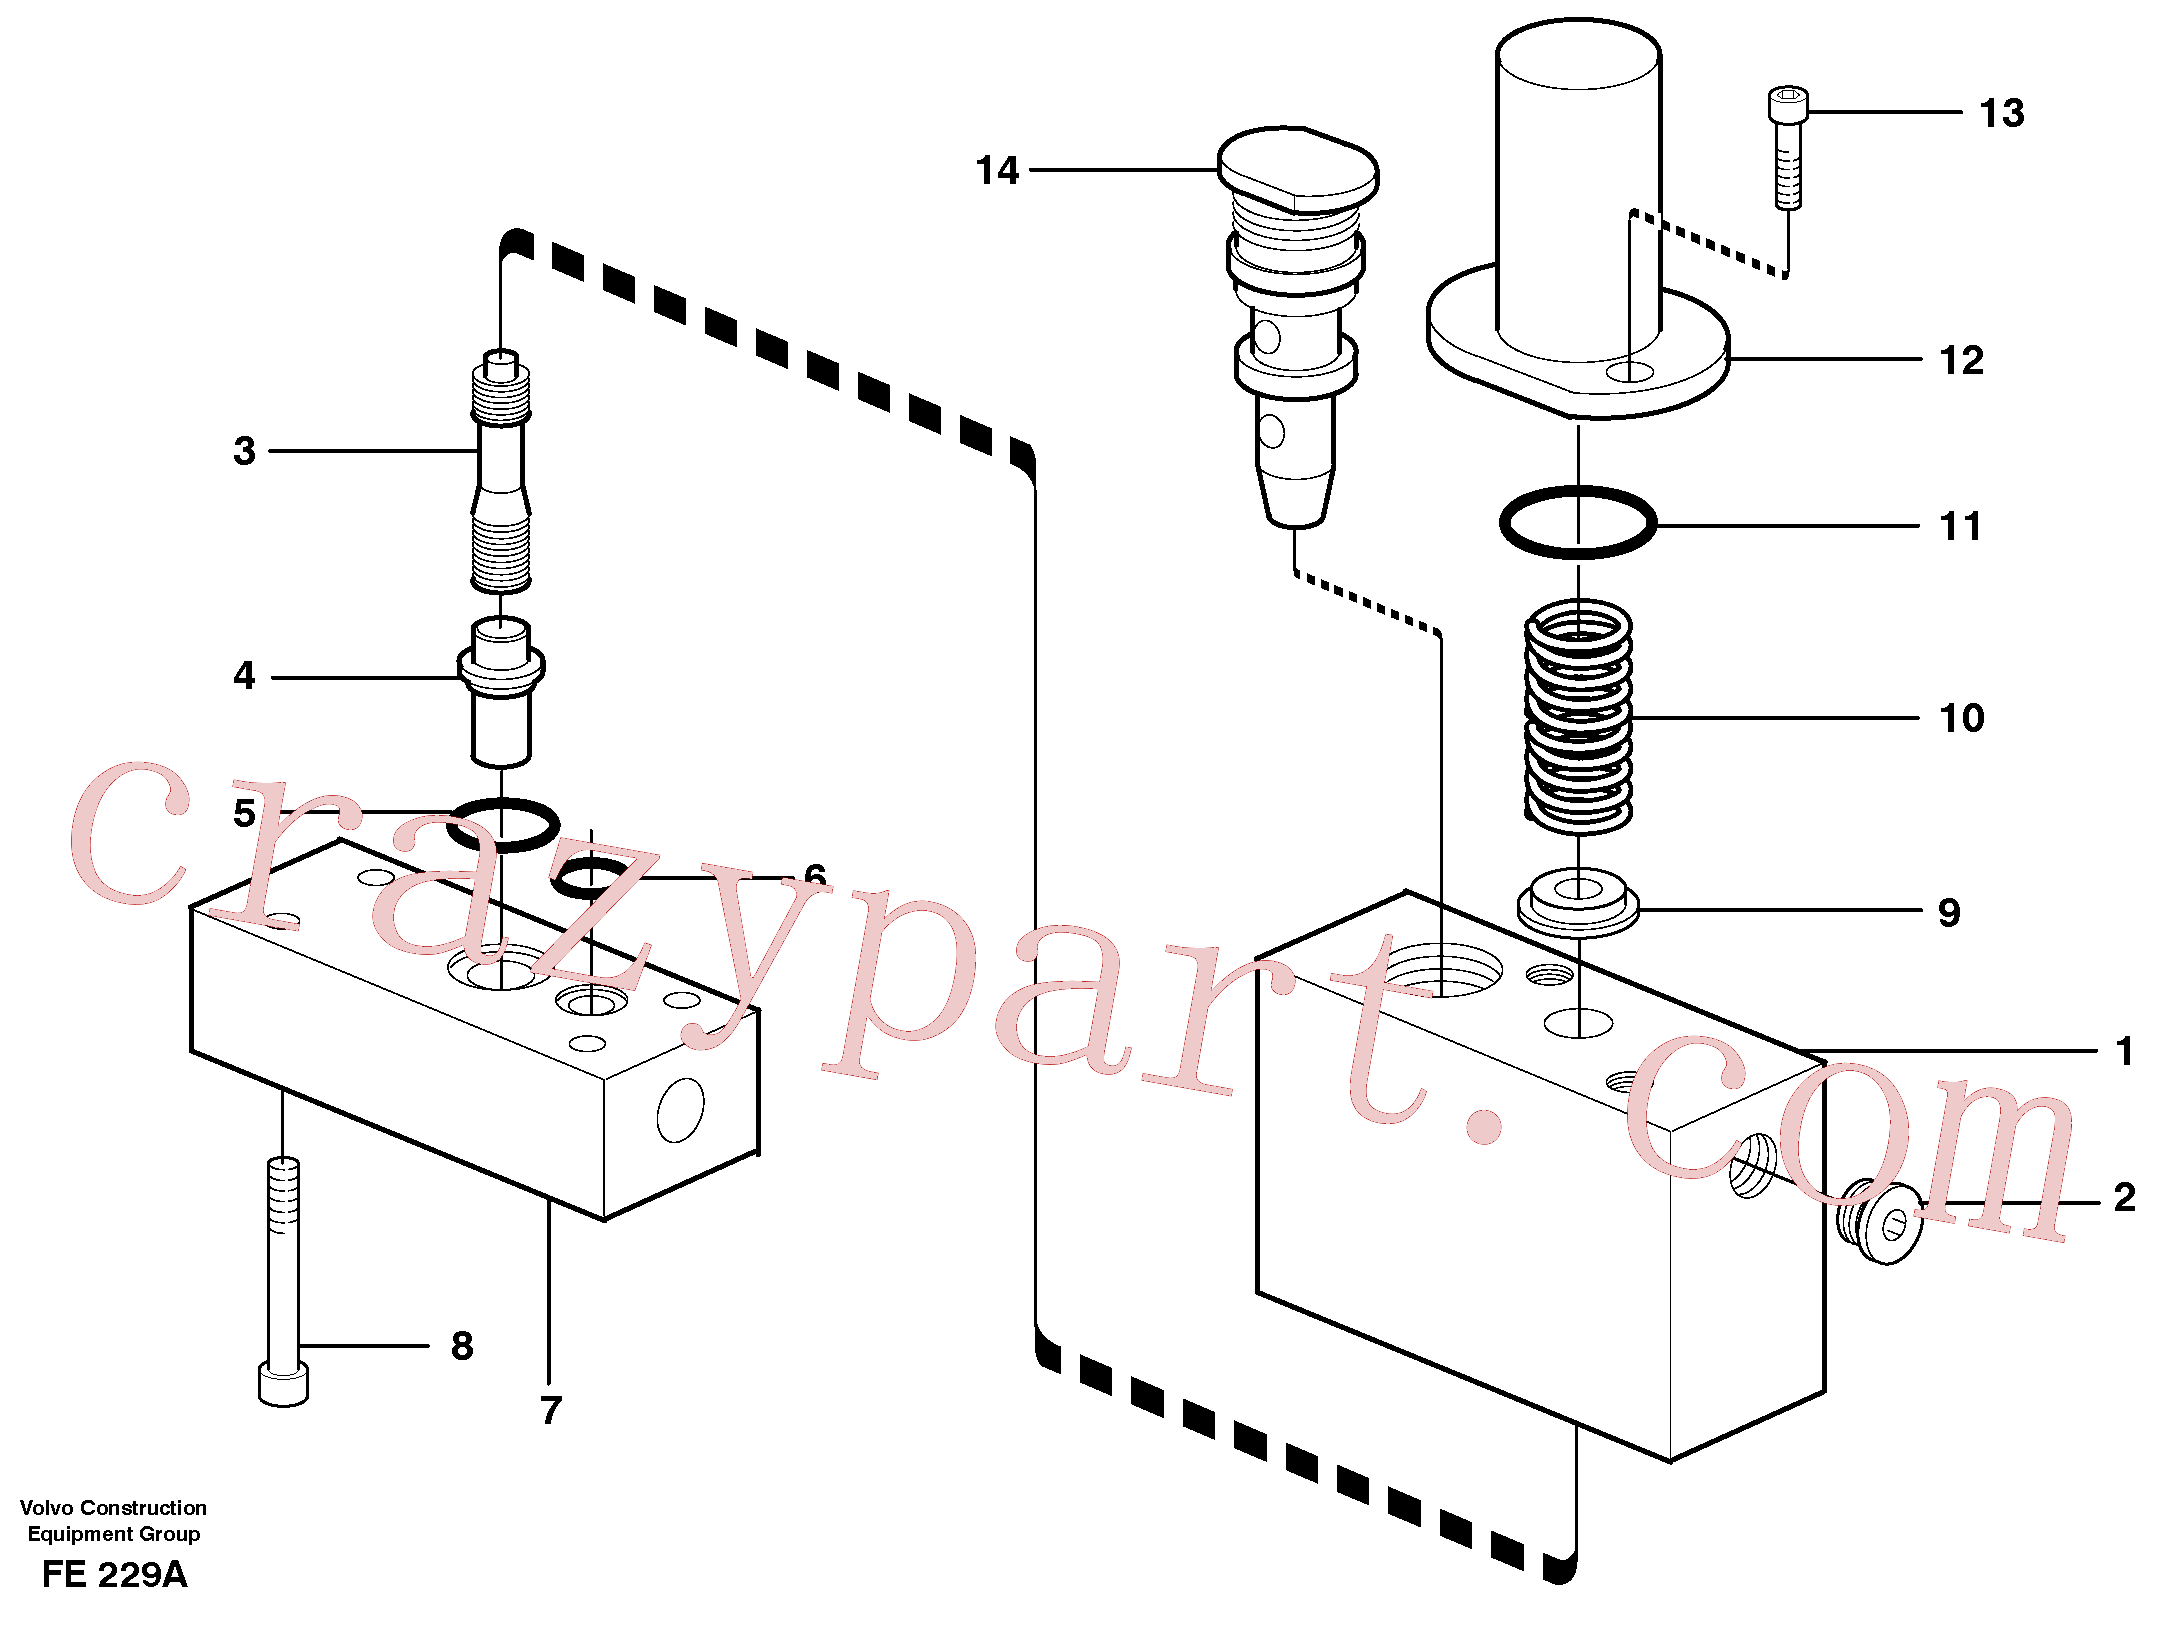 VOE14054983 for Volvo Thermostatic valve(FE229A assembly)